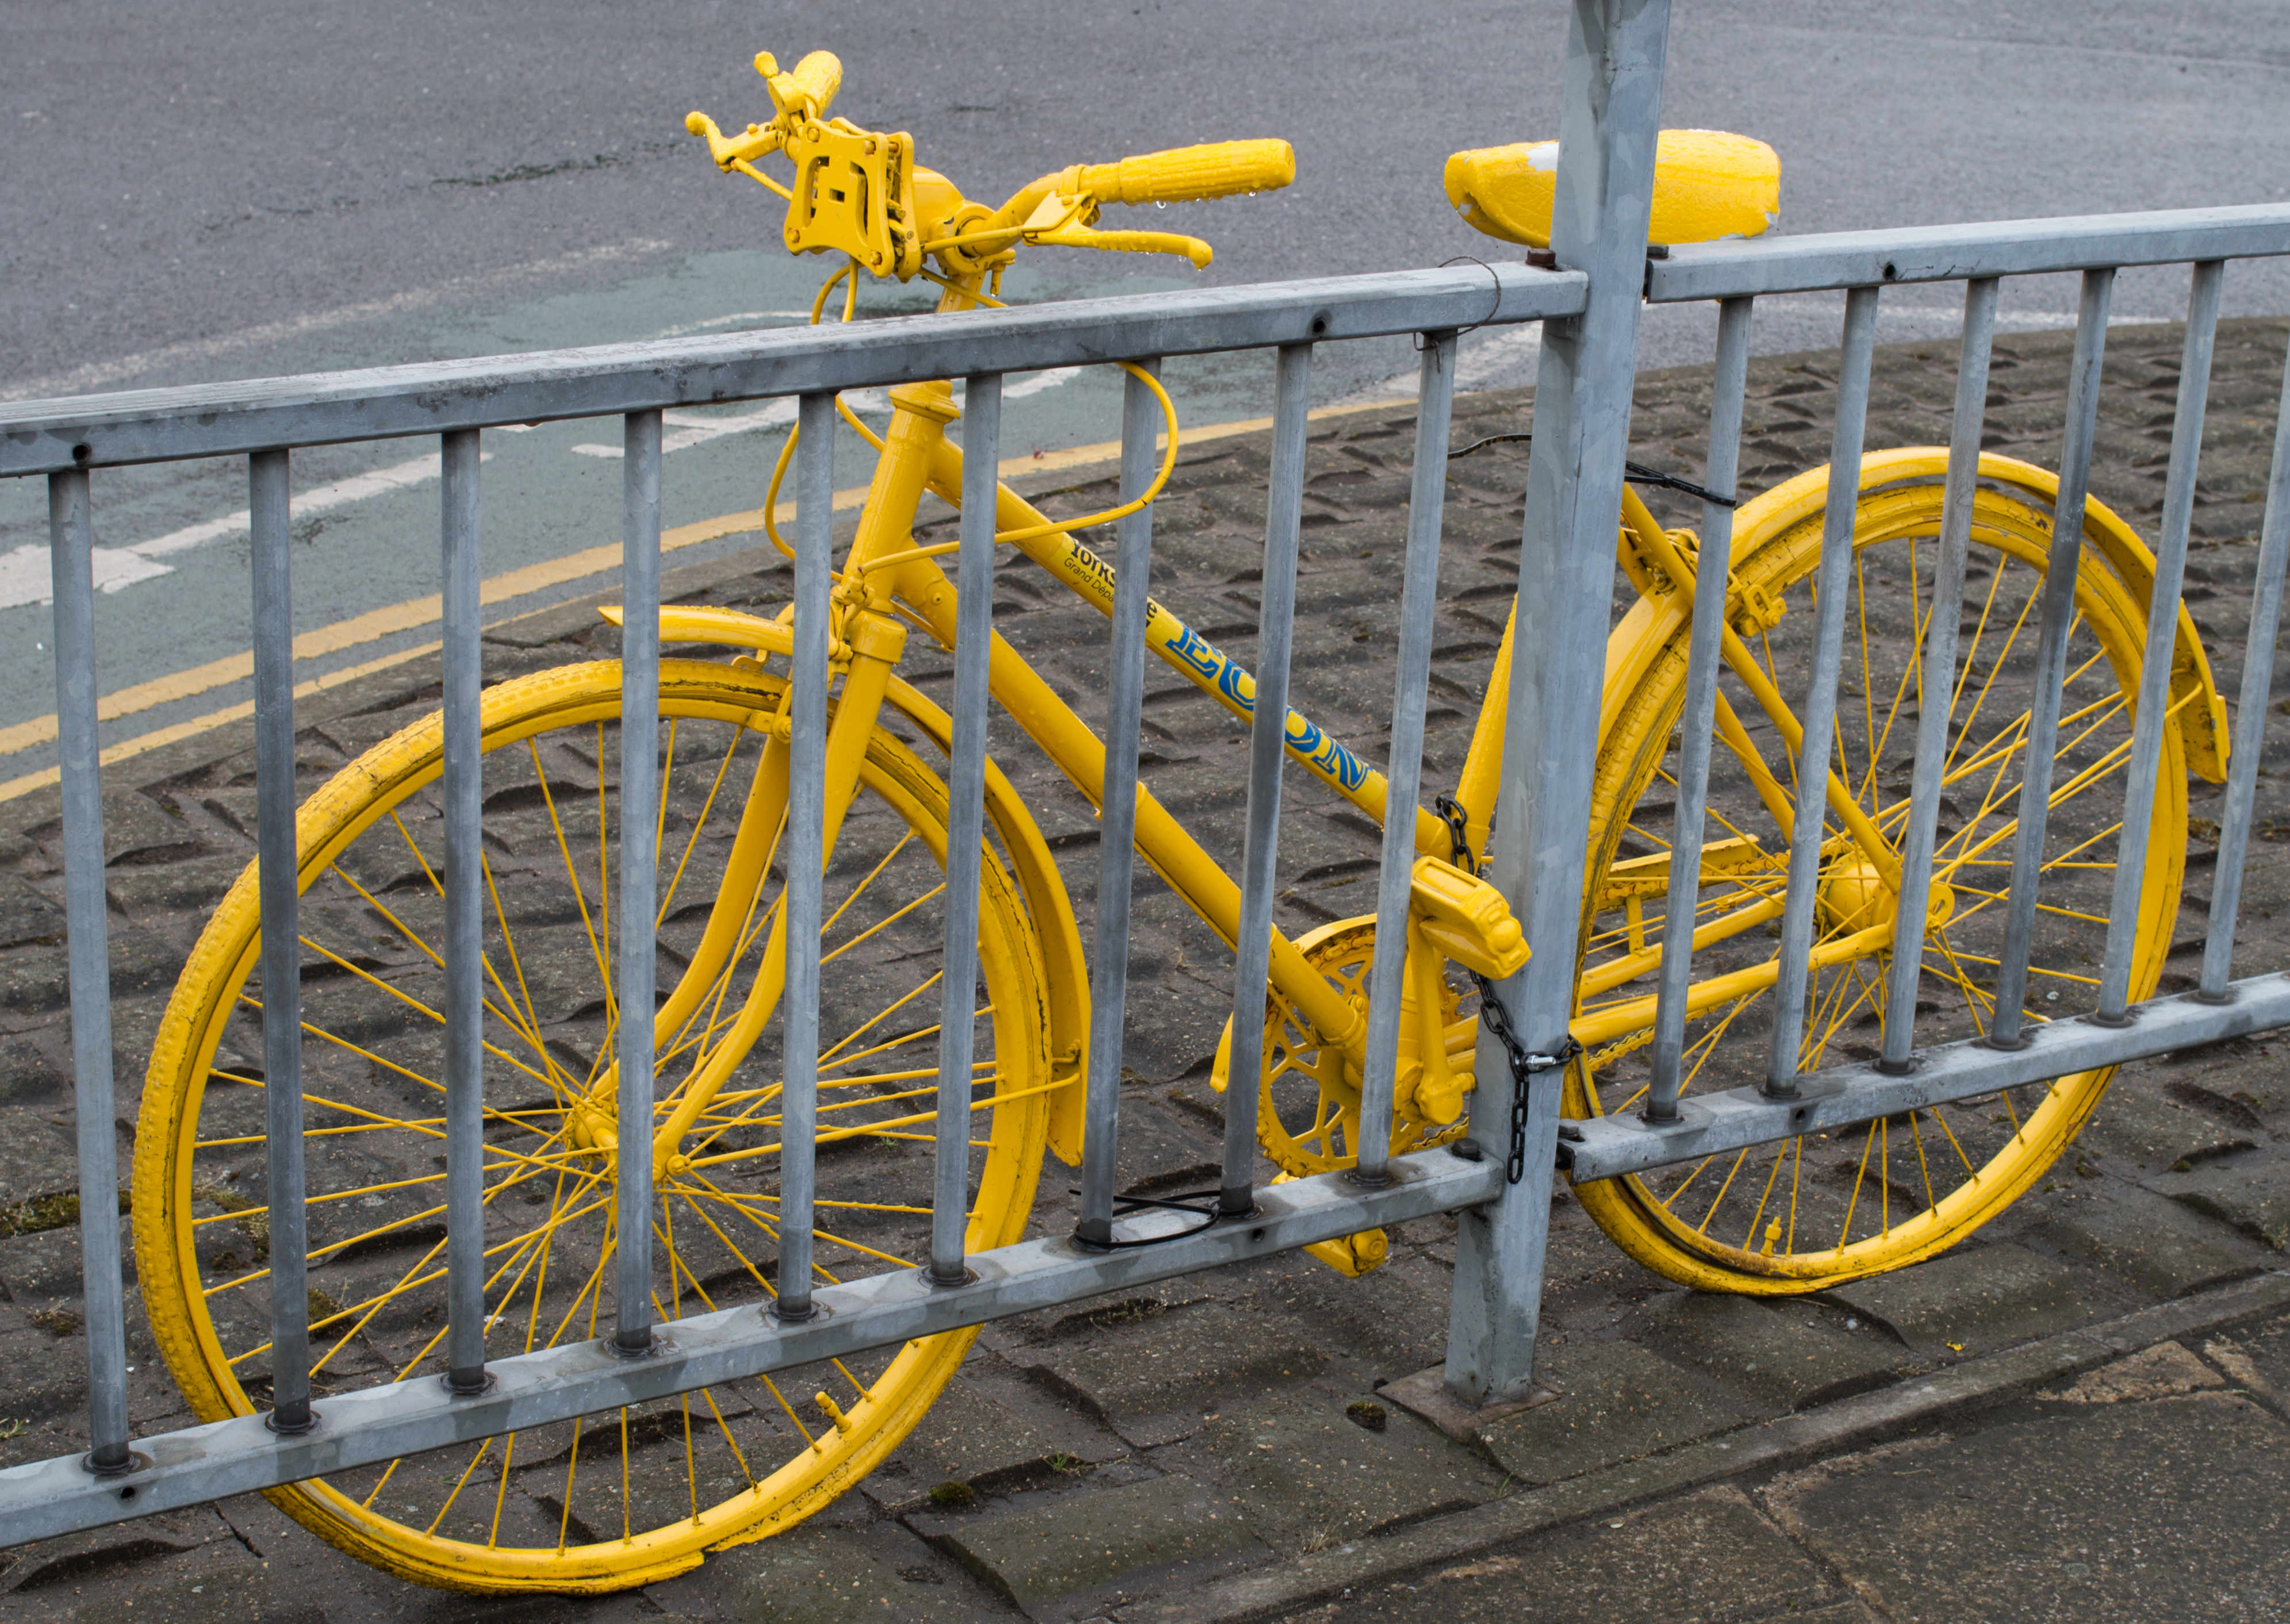 A bike painted yellow fastened to a railing